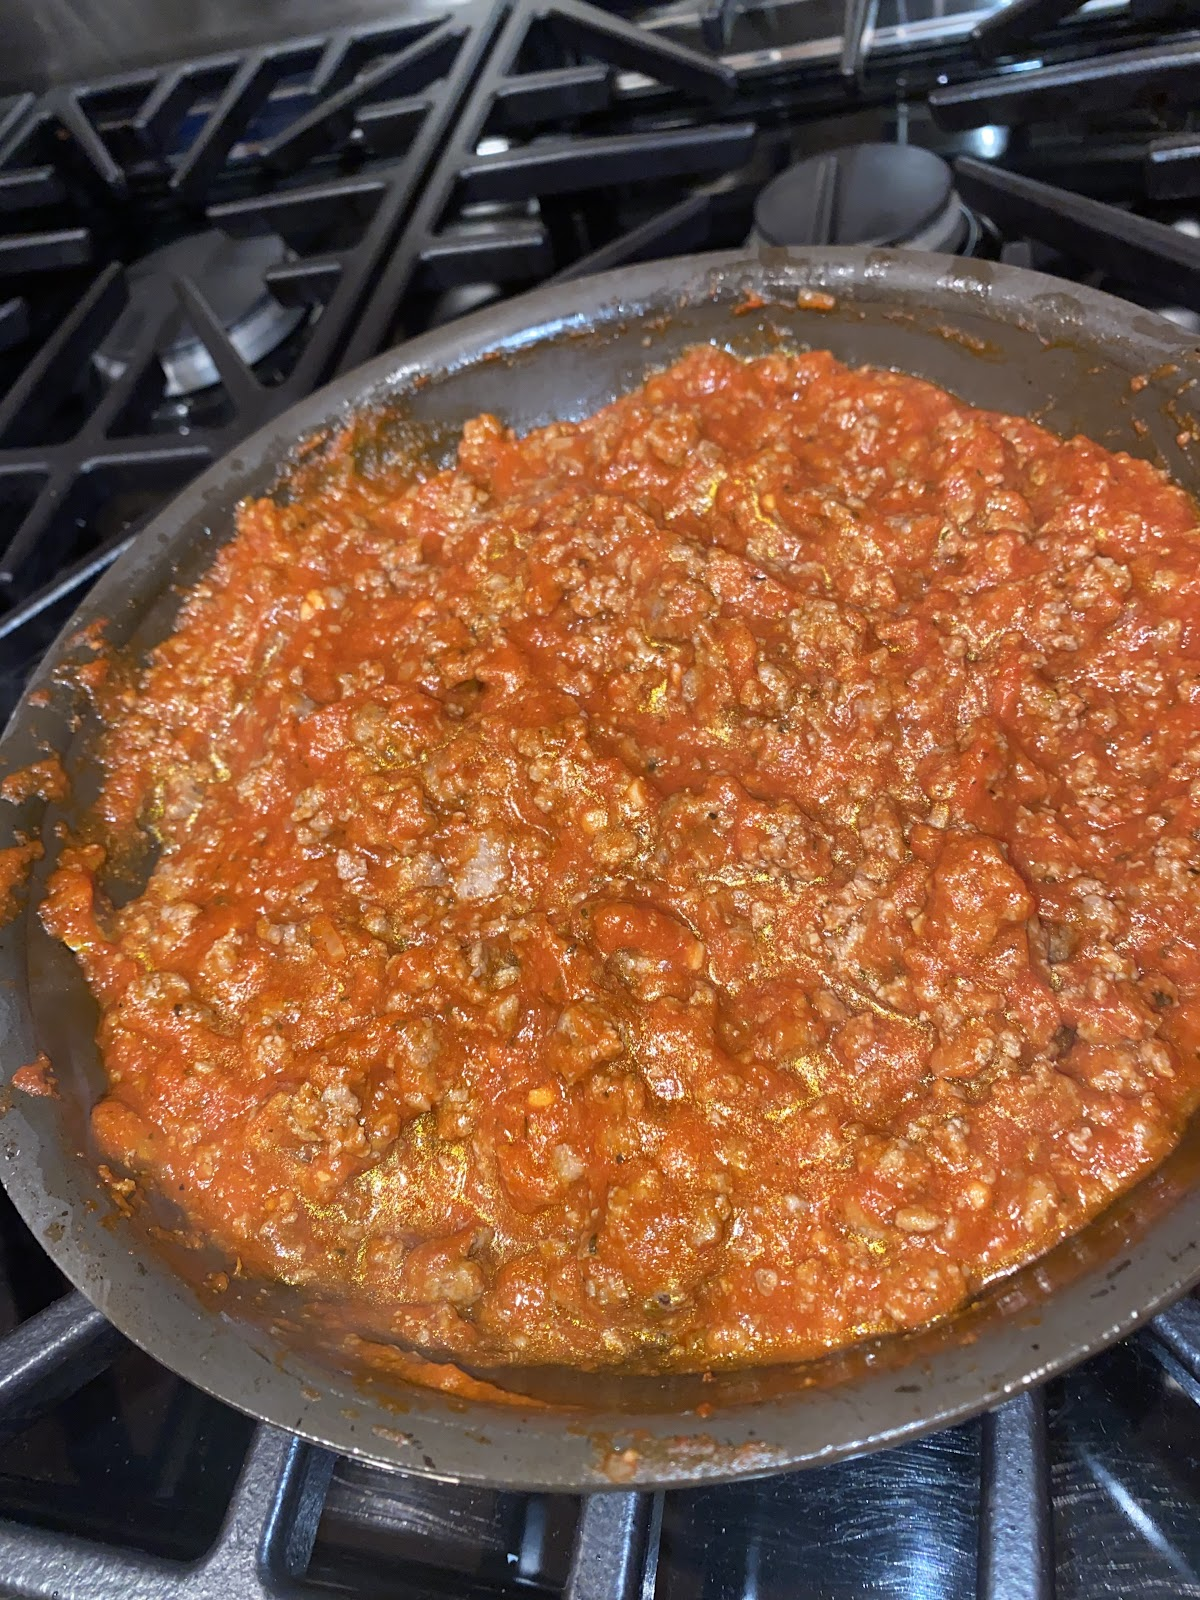 Once you finish the meat mixture, it should resemble a meat sauce.